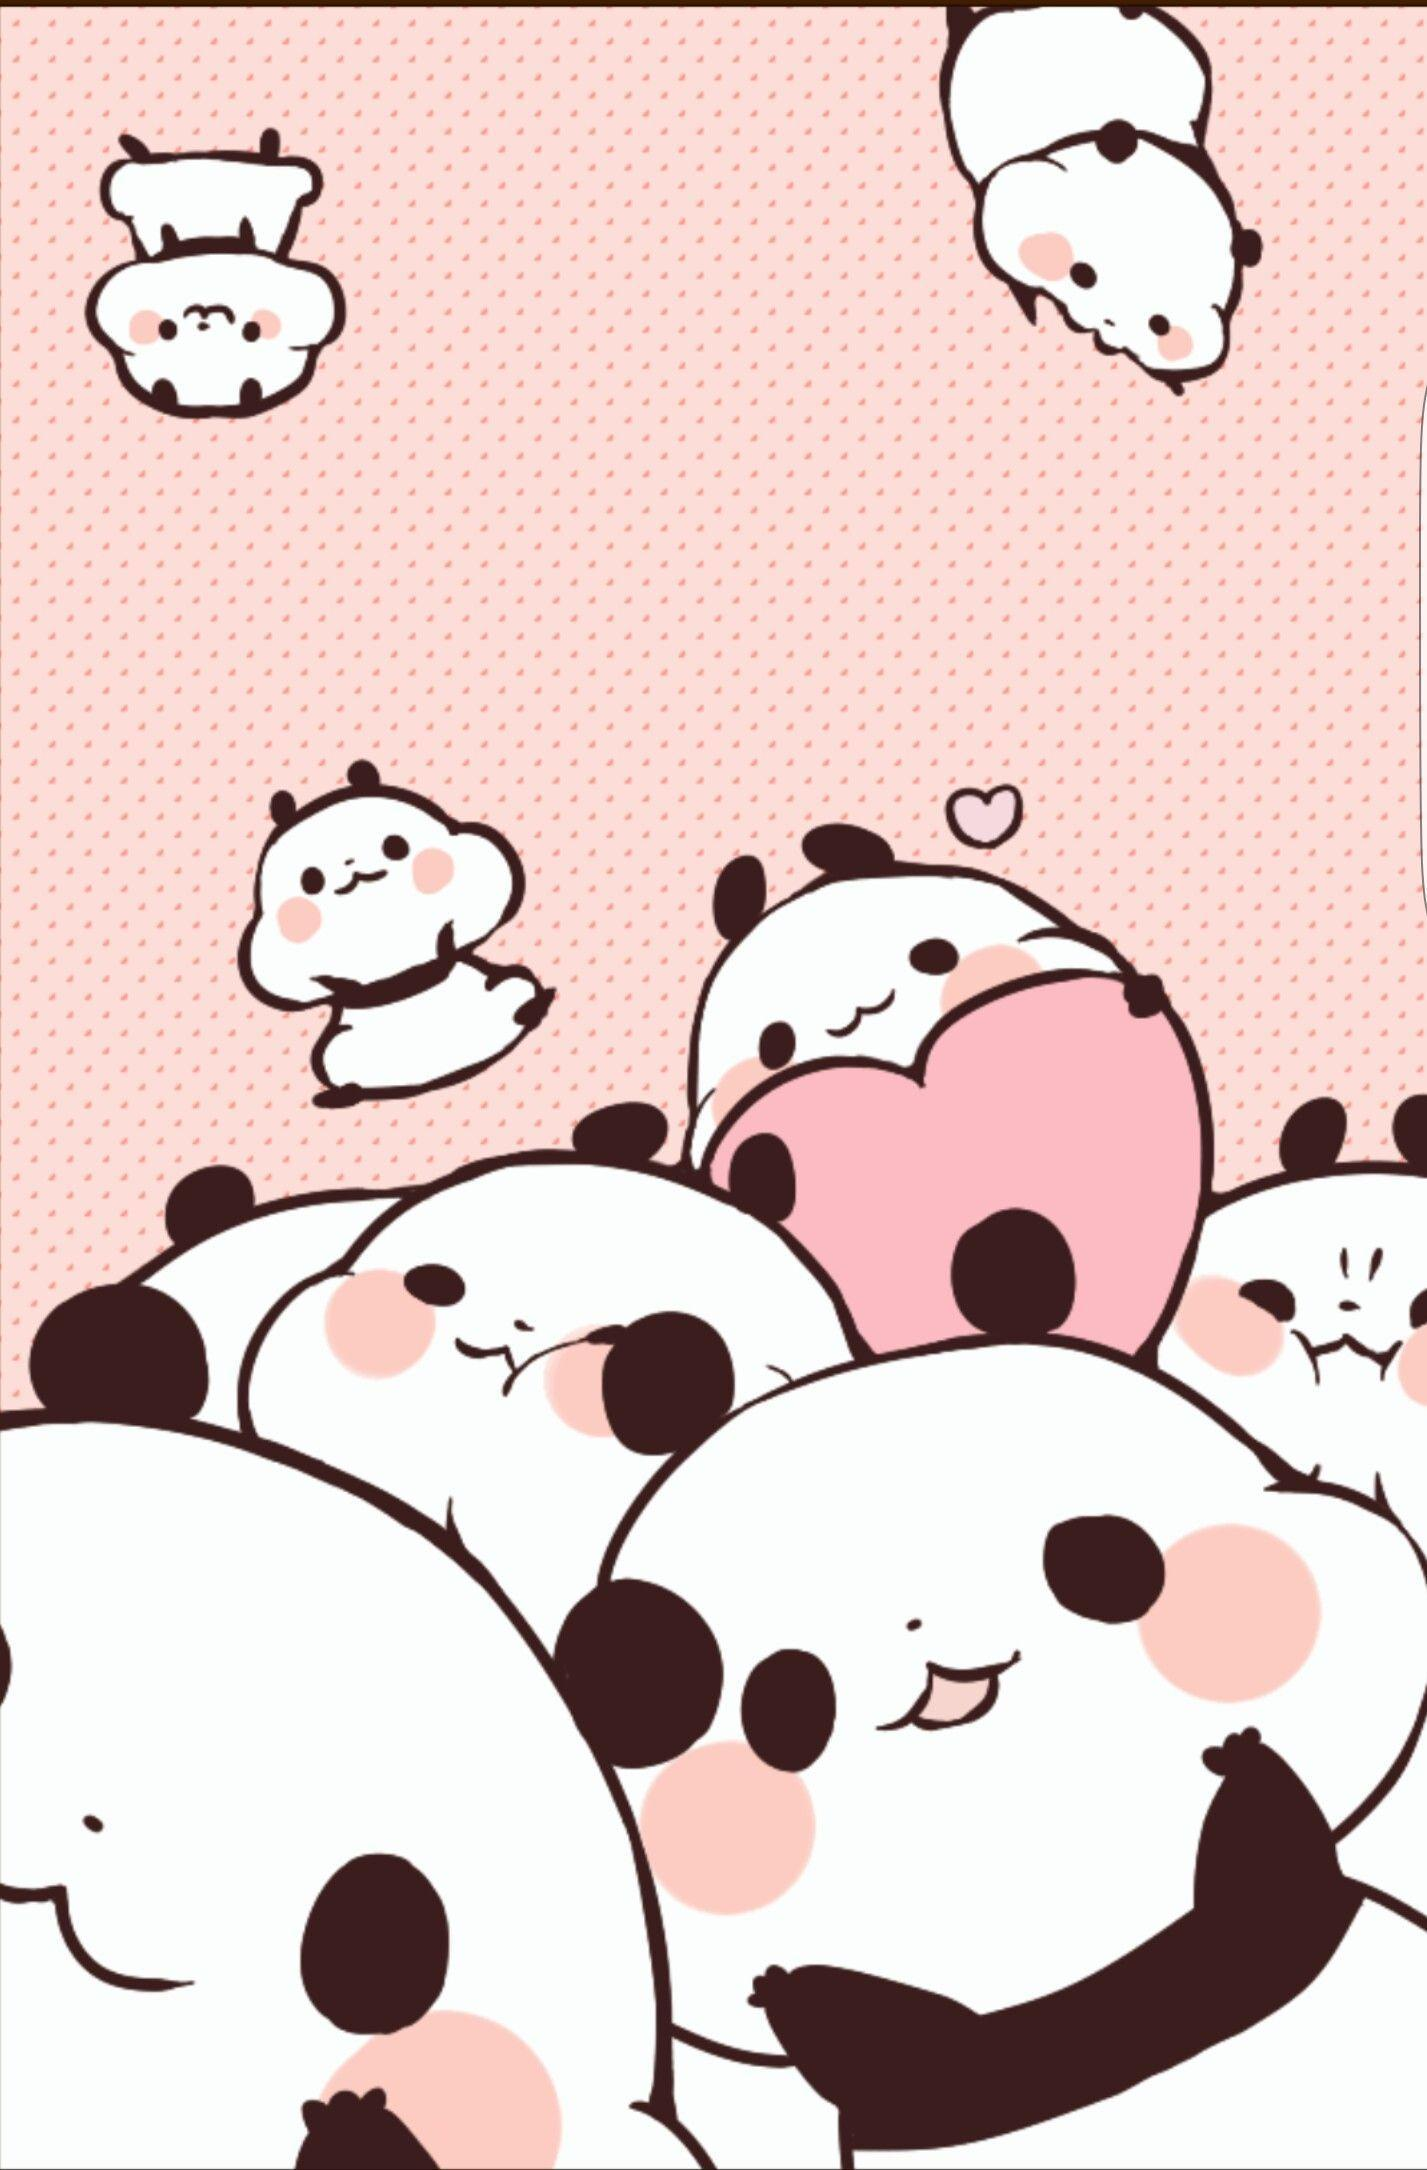 Anime Panda Wallpaper : anime, panda, wallpaper, Kawaii, Panda, Wallpapers, Wallpaper